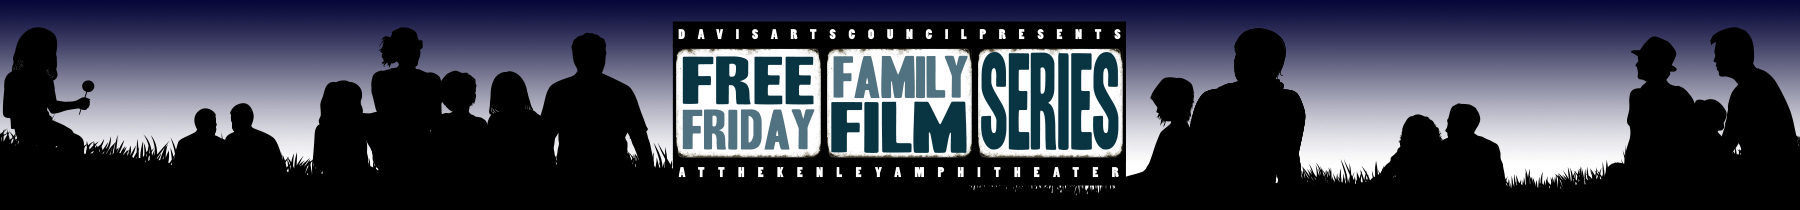 Free Friday Family Film Series: The newest free program of Davis Arts Council